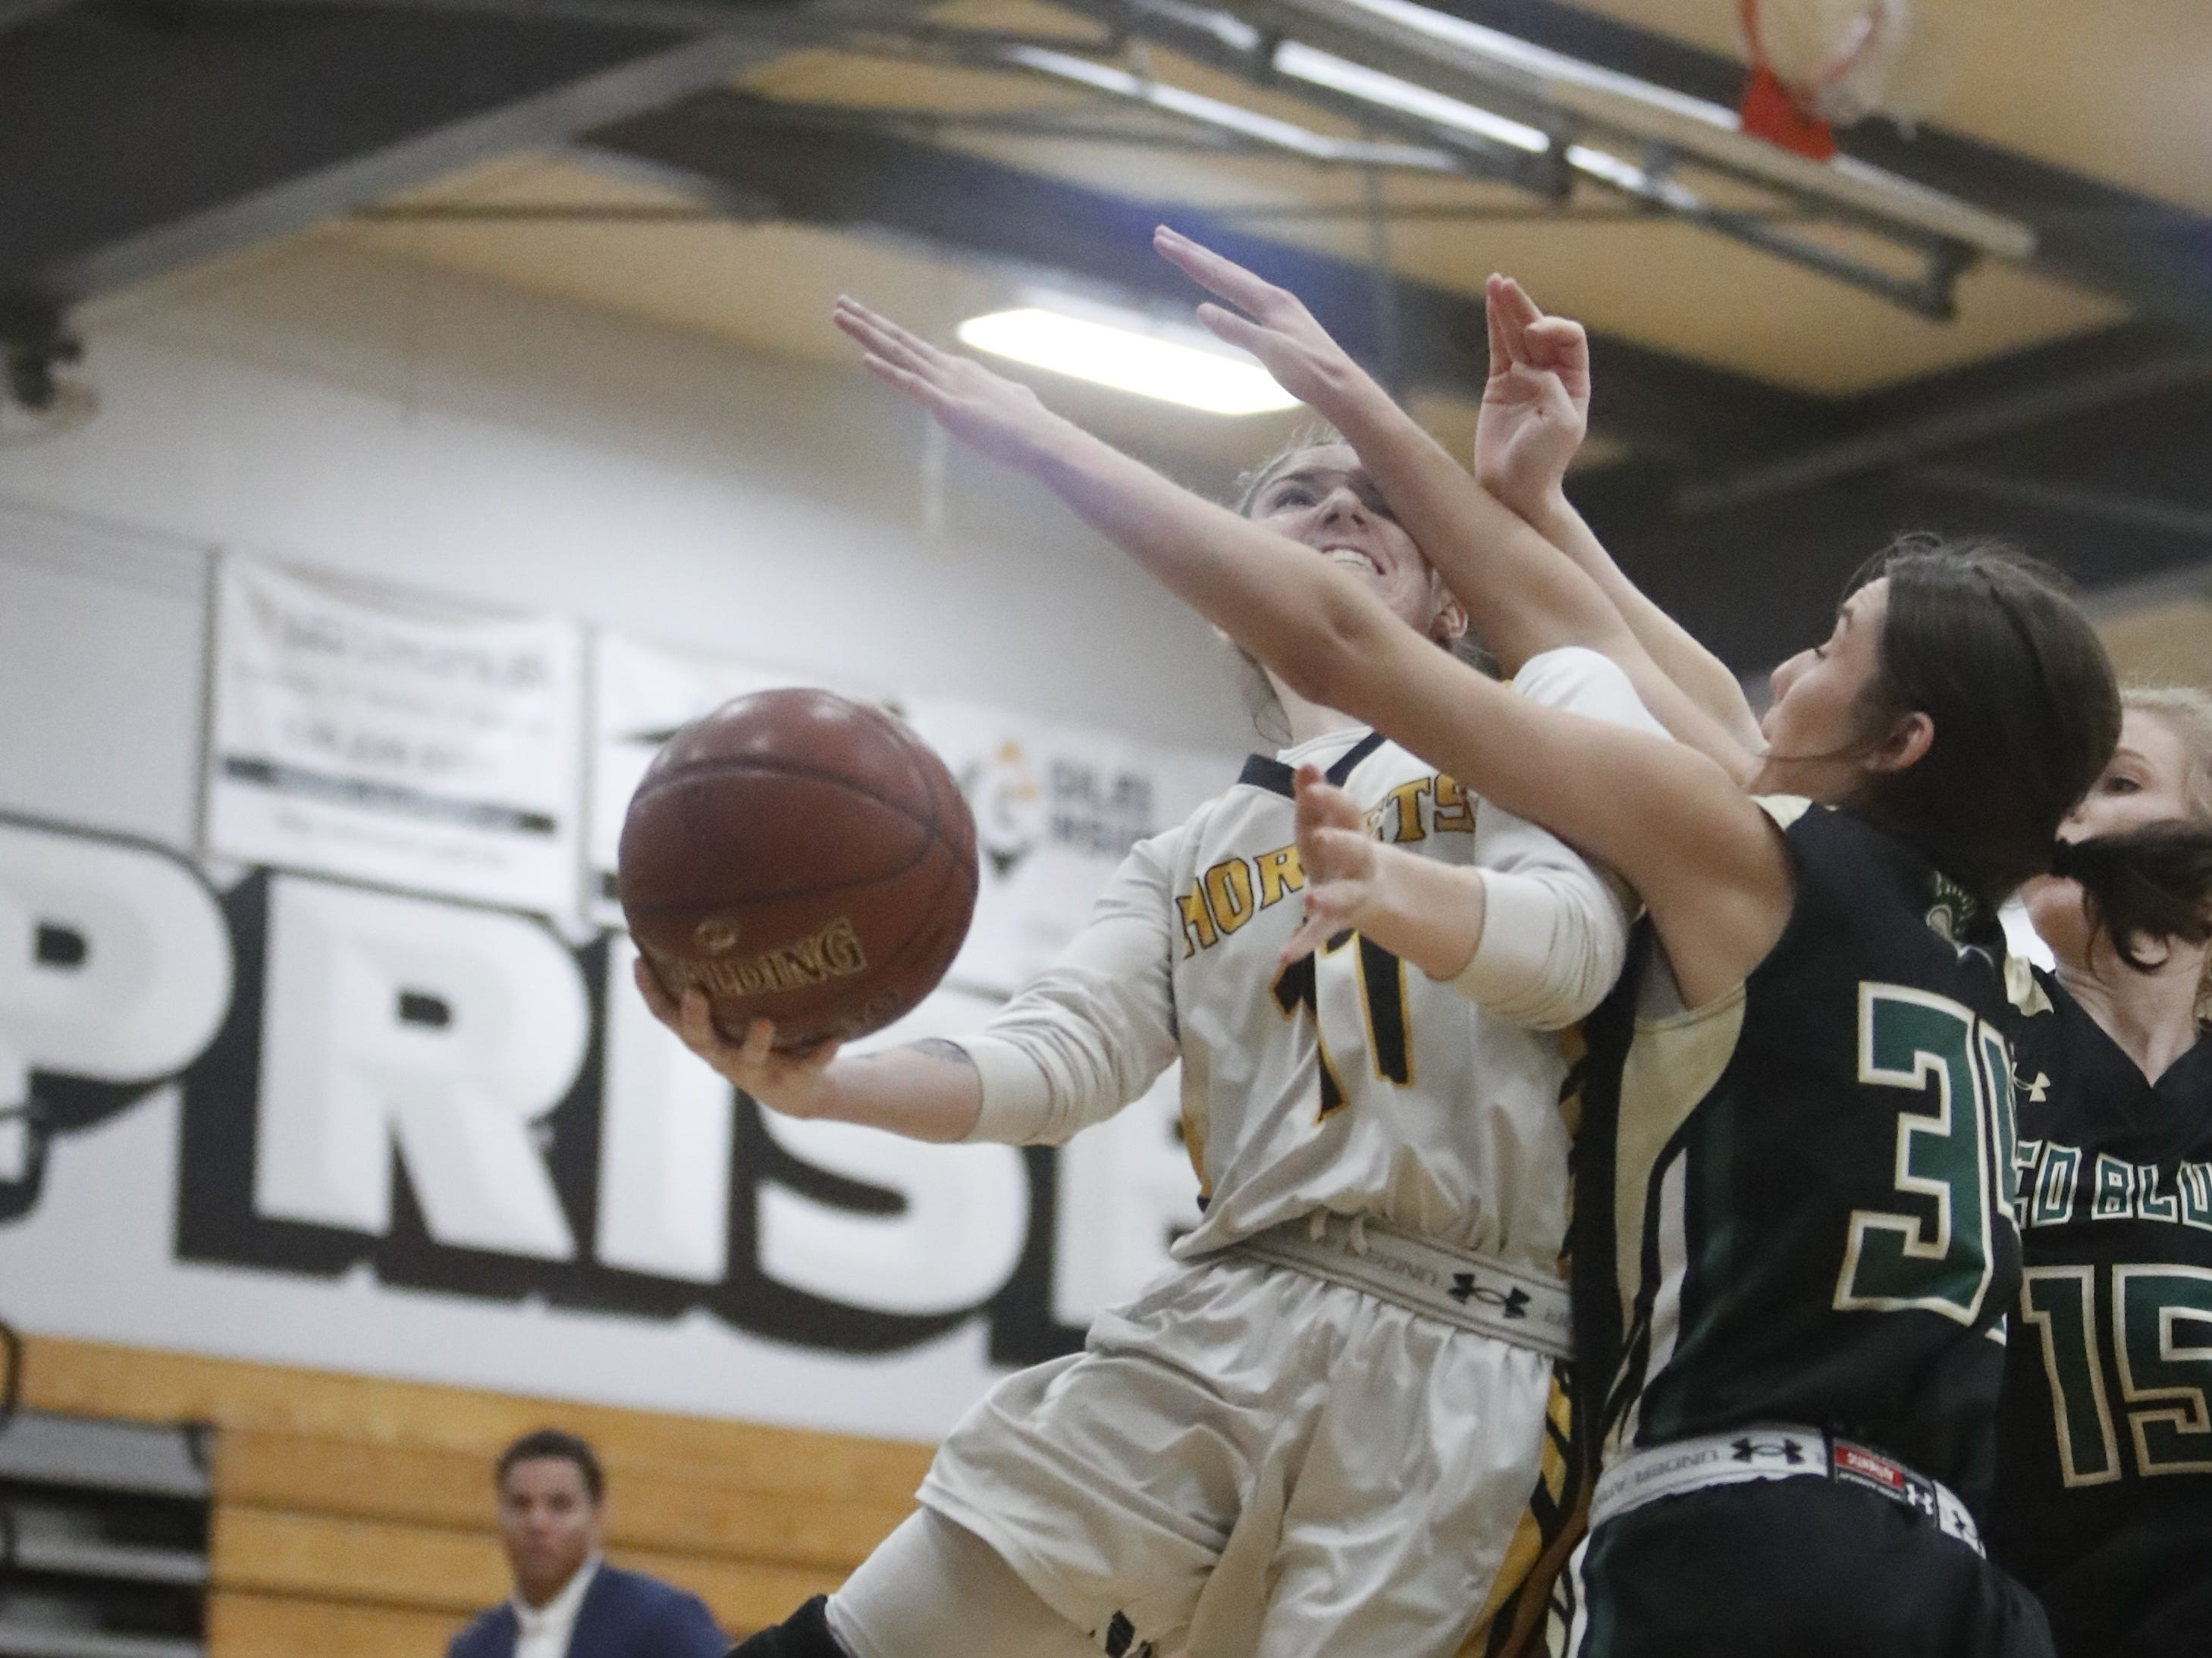 Red Bluff senior Hayden Ellenberger (right) tries to block a shot from Enterprise senior Karina Archibald during the Hornets' 77-36 win over Red Bluff on Tuesday, Feb. 19, in the Division III Northern Section semifinals.